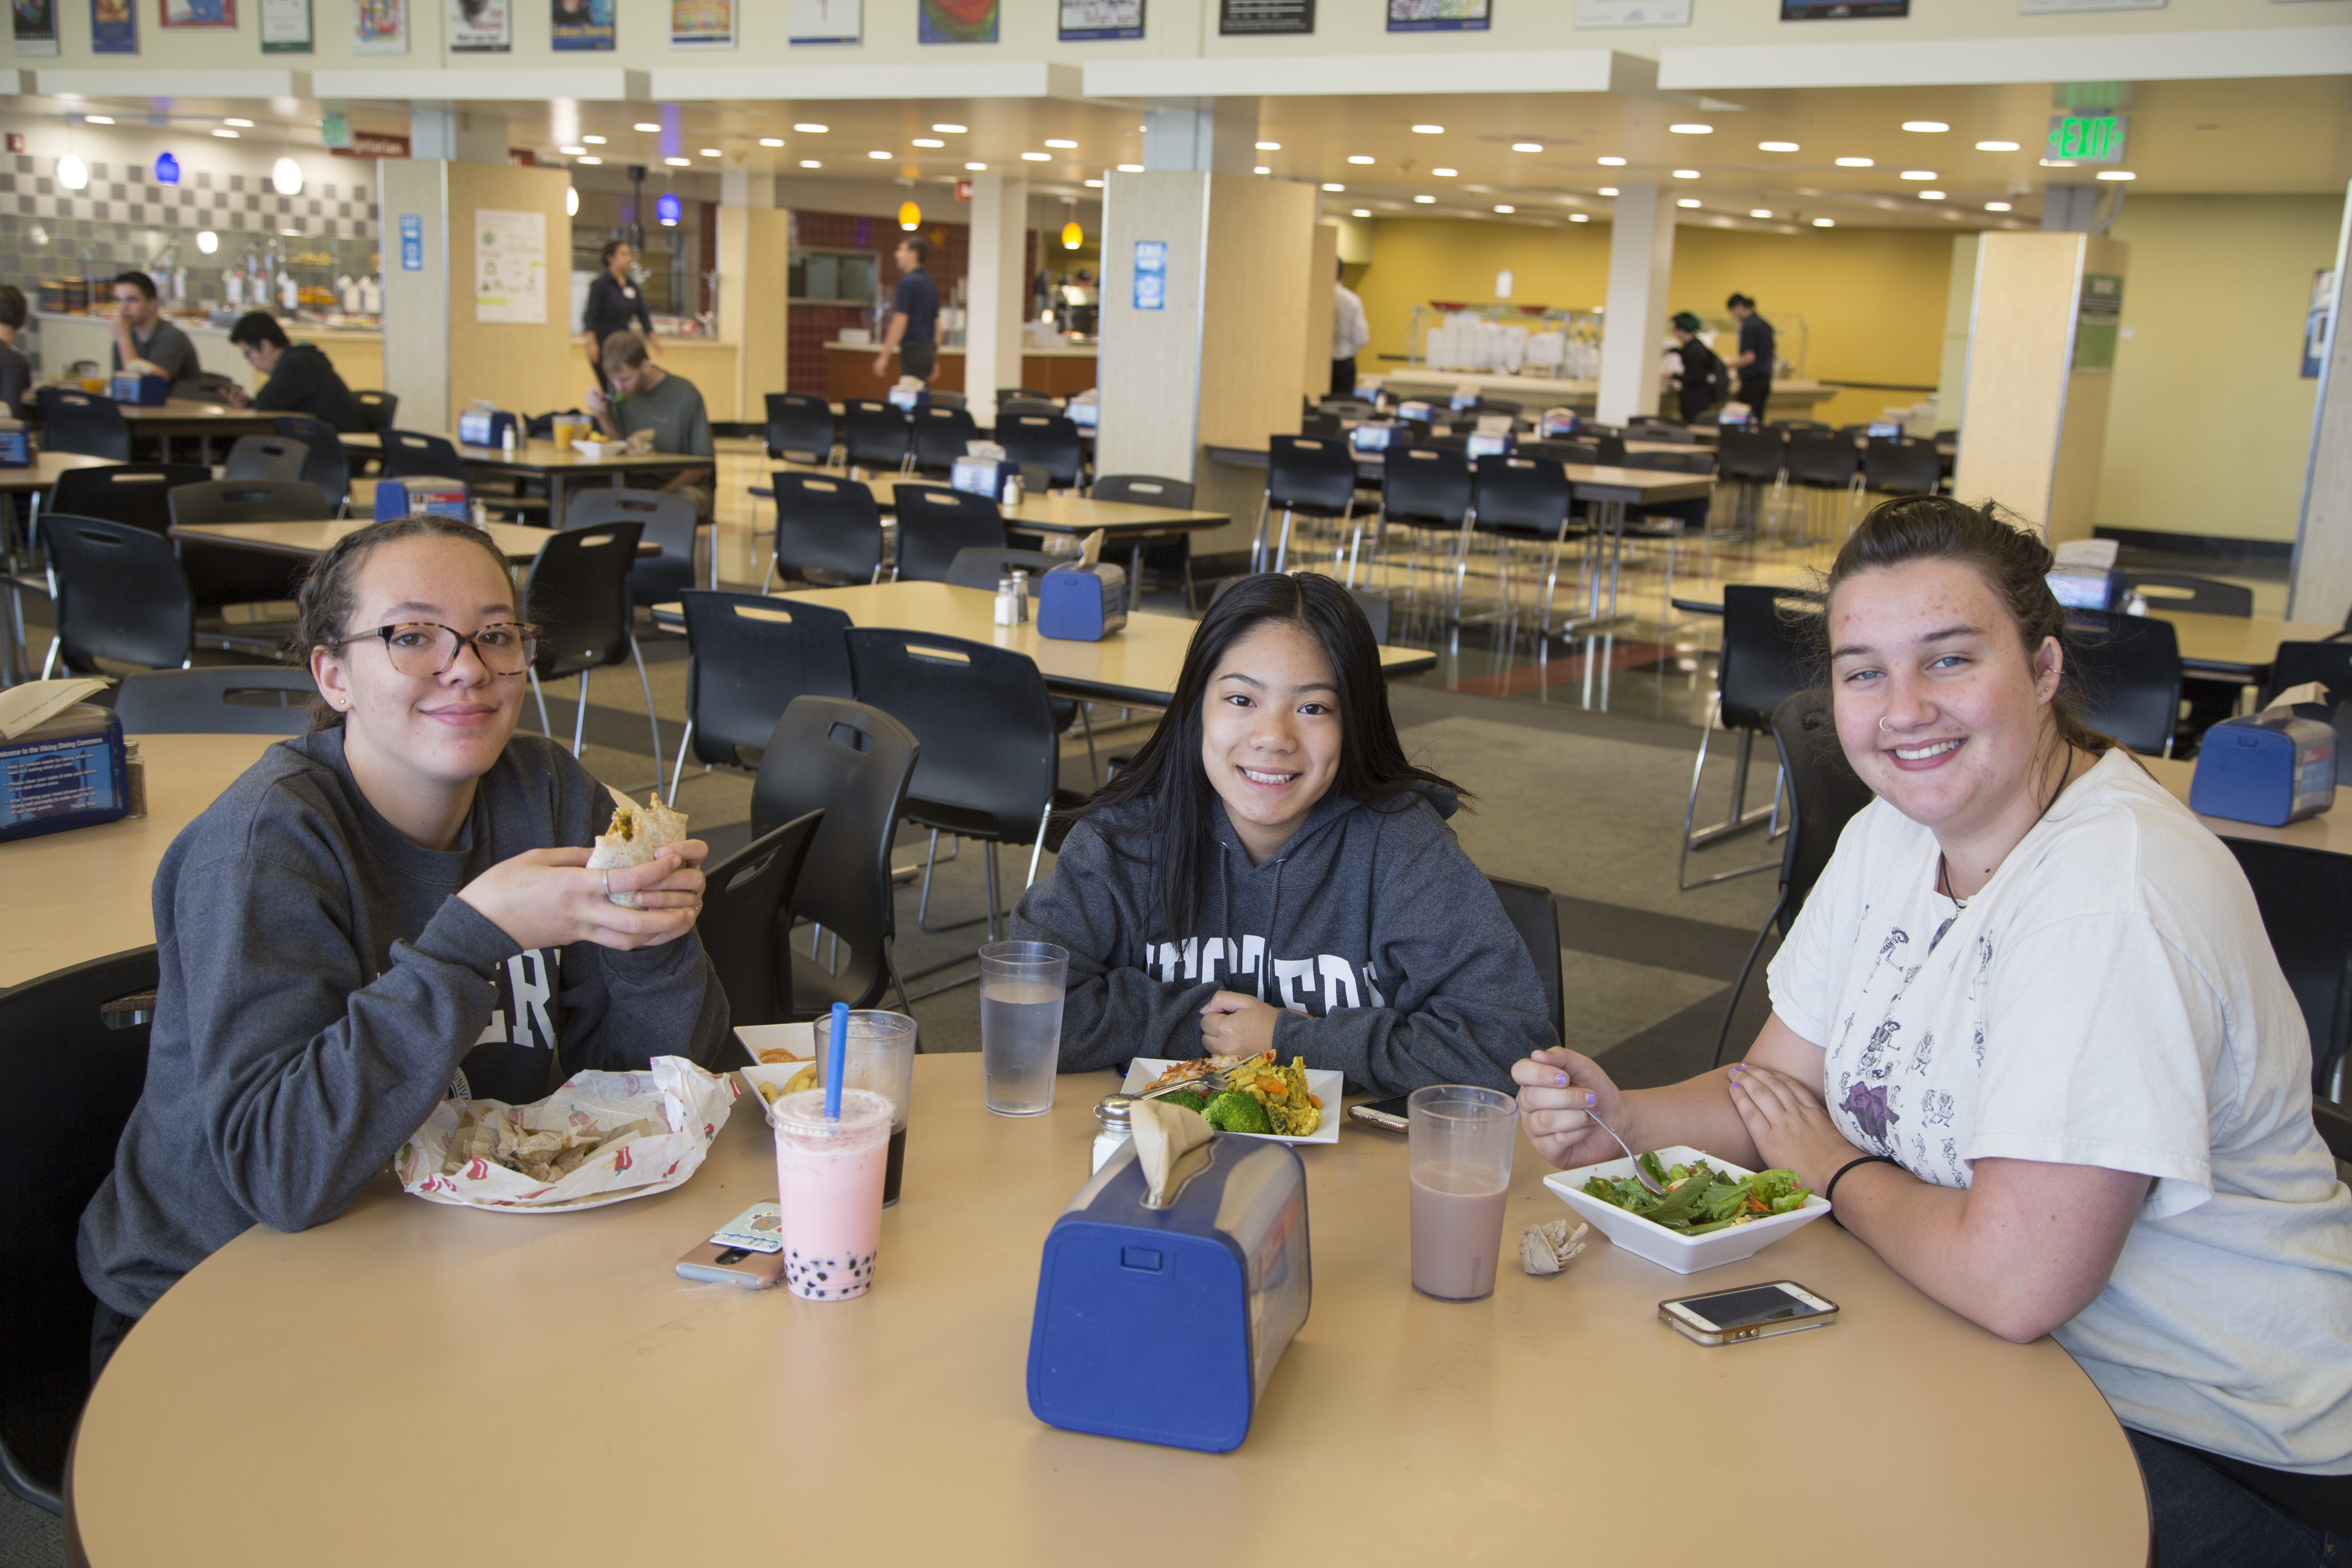 Three College quest students sit around a cafeteria table